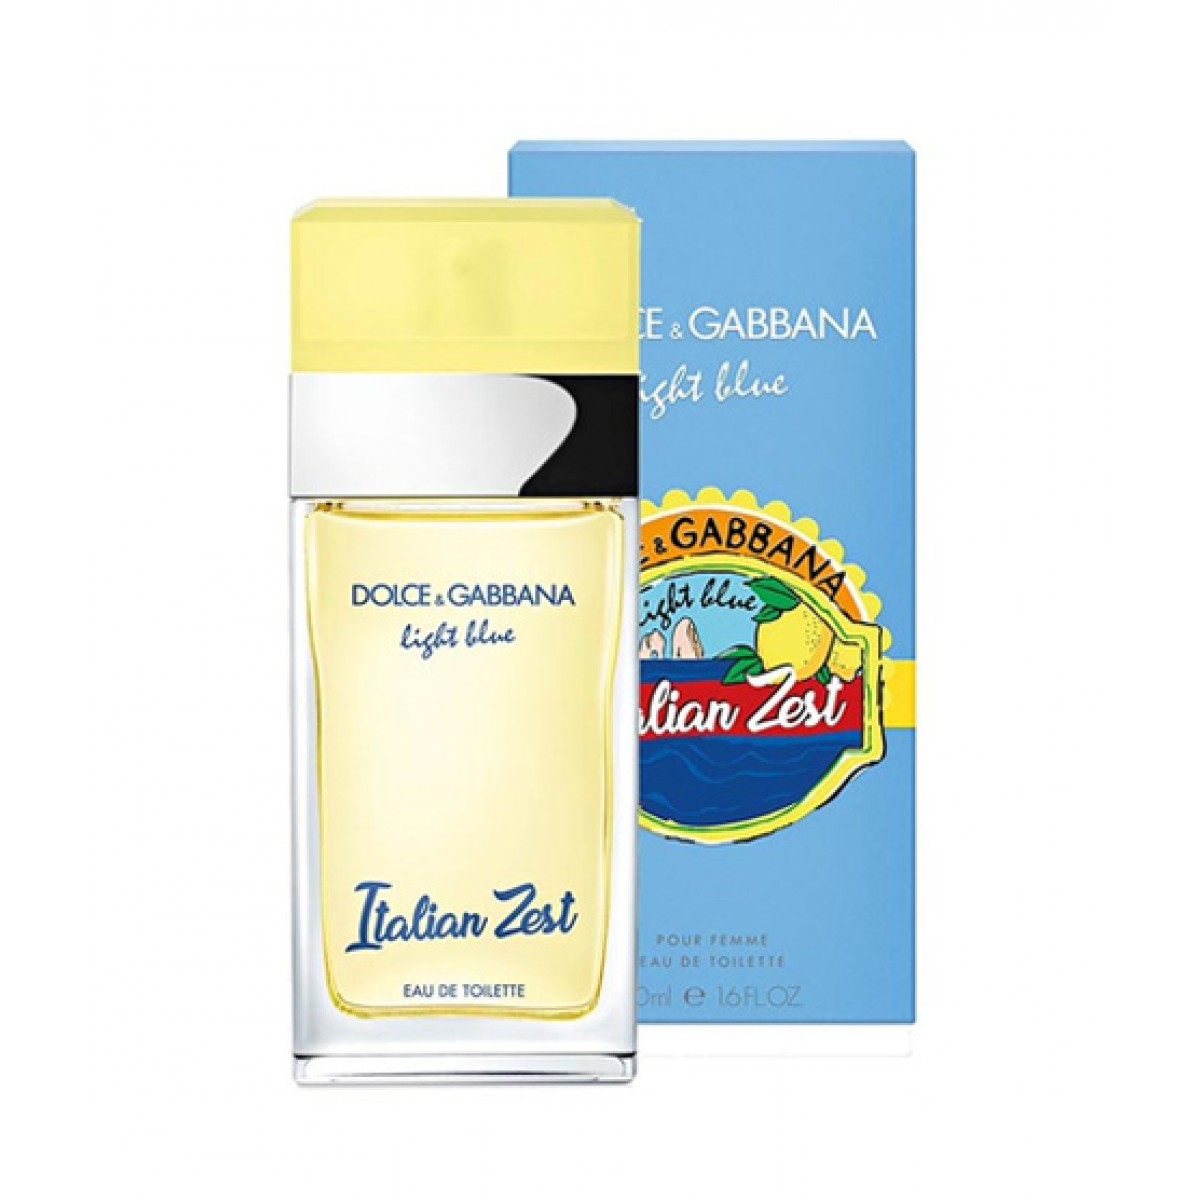 dolce_gabbana_light_blue_italian_zest